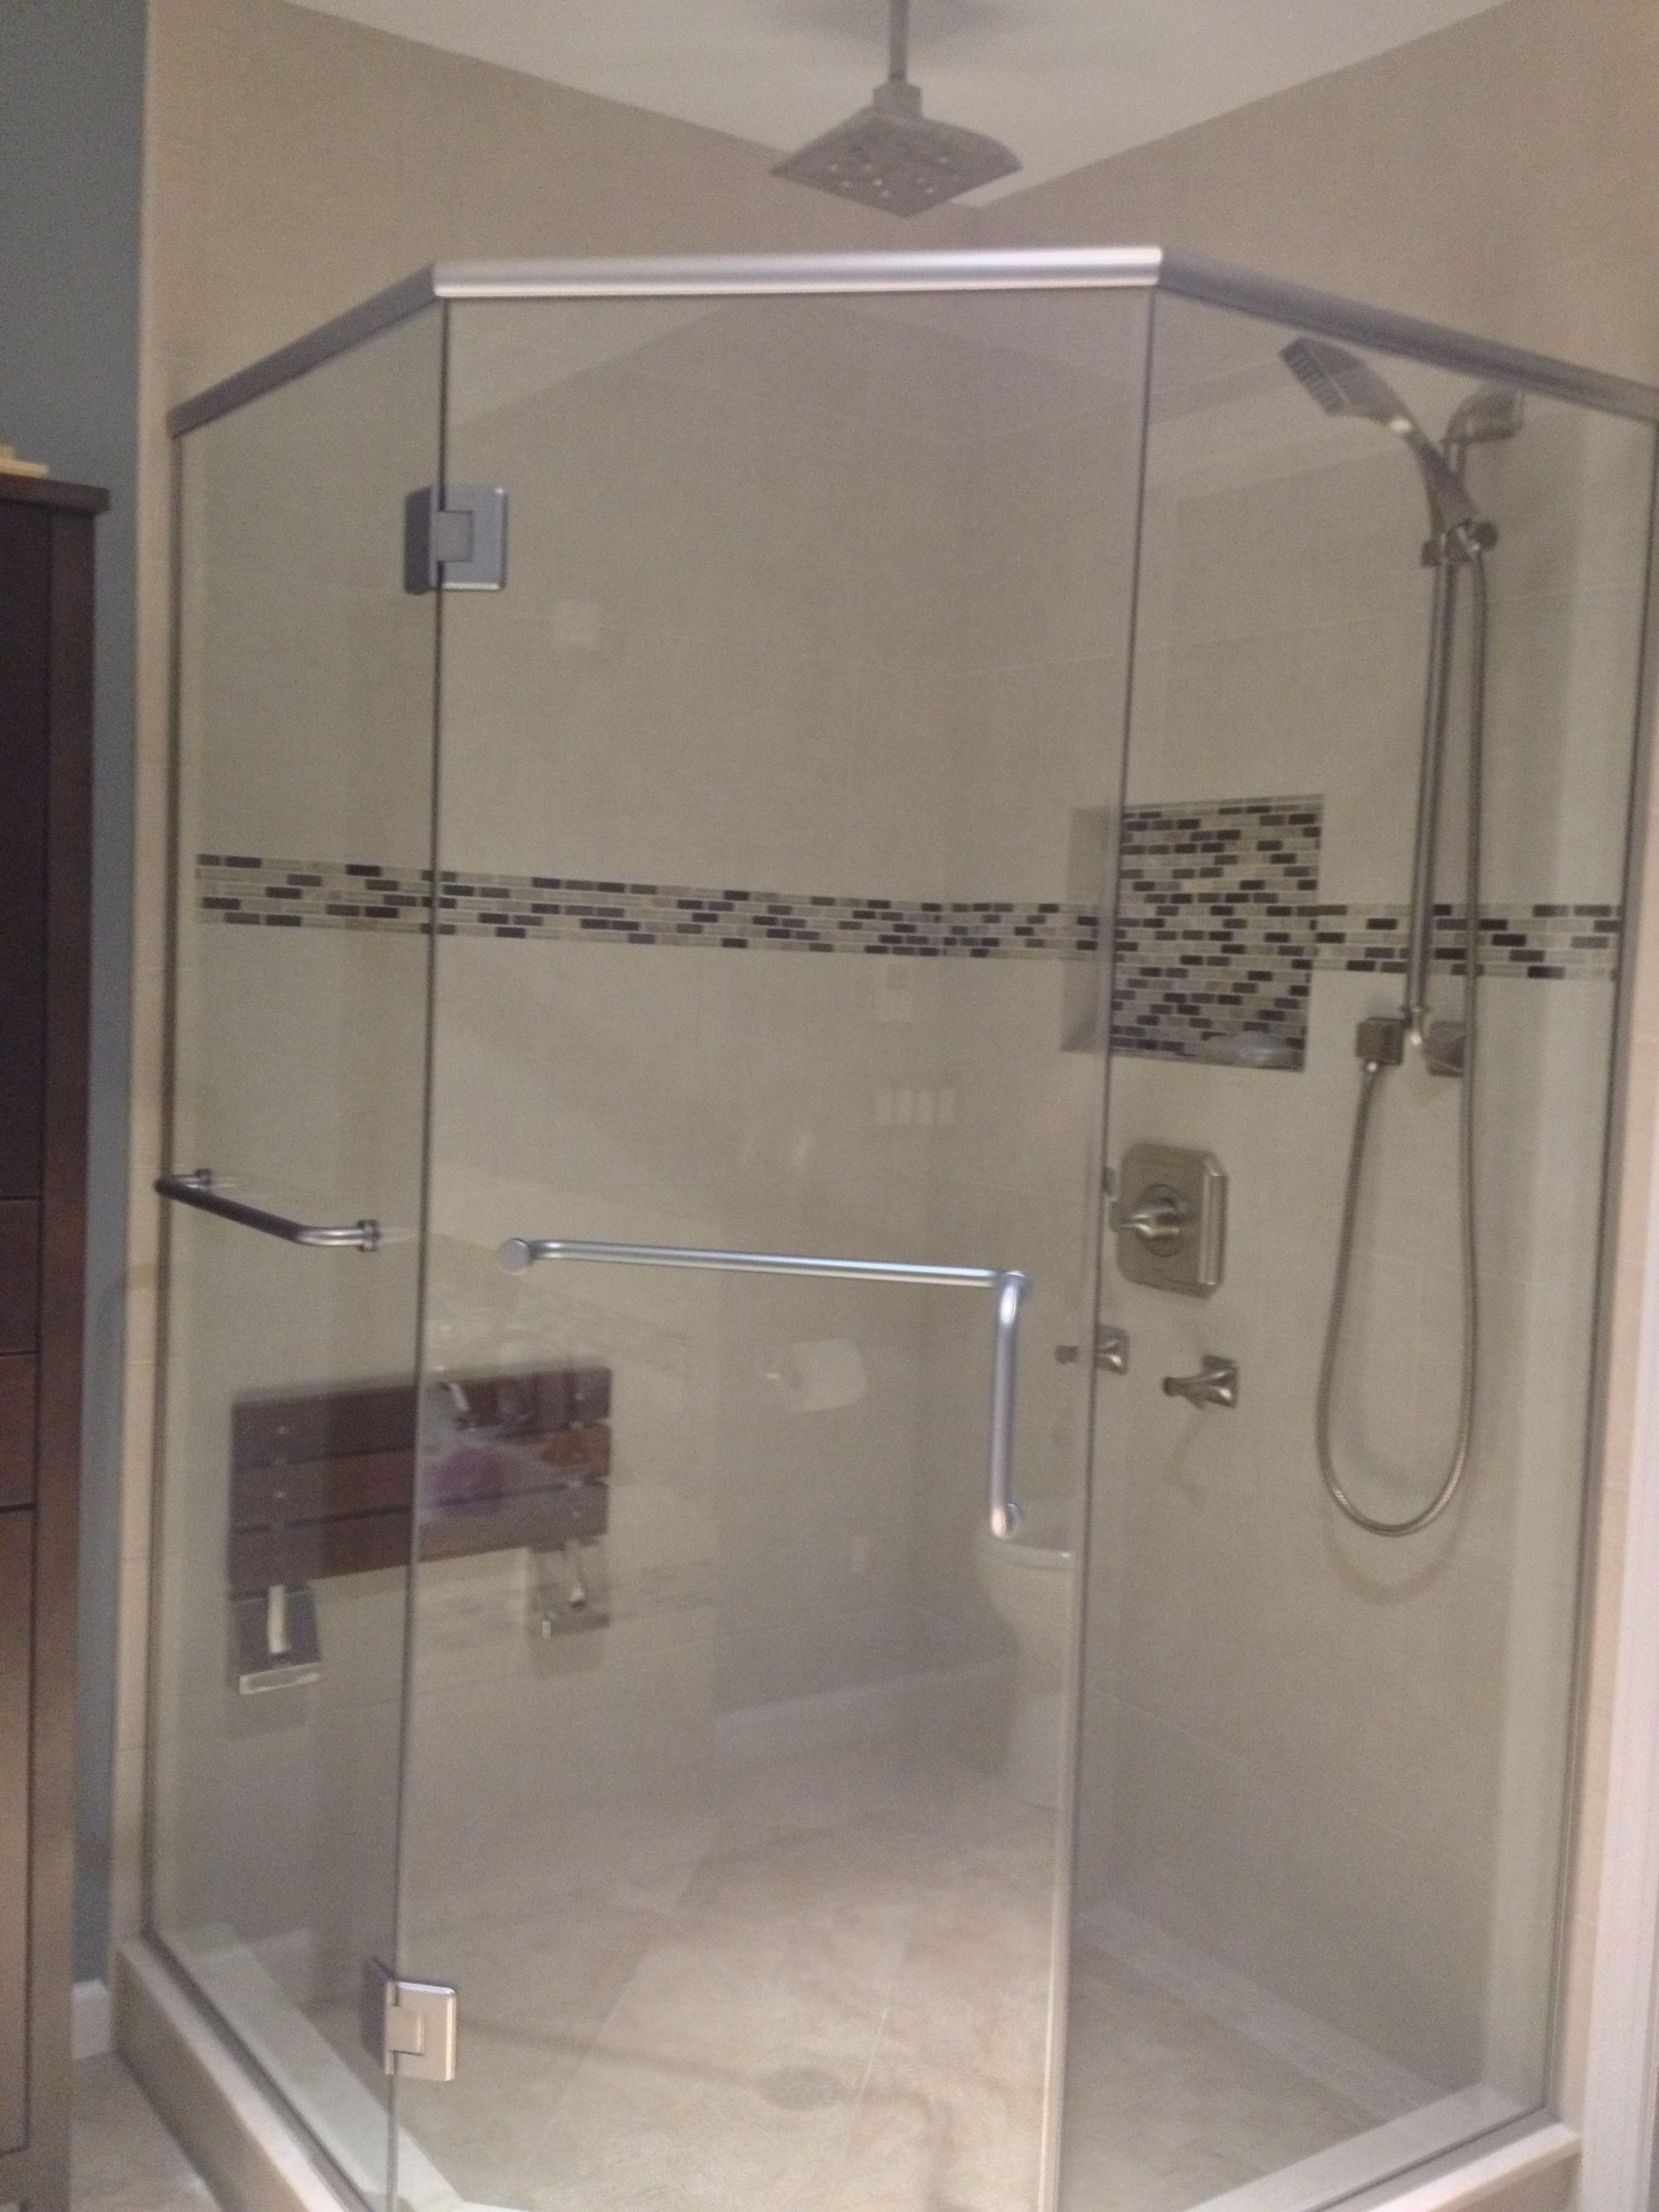 Neo Angle Shower With Teak Fold Up Seat Tiled Product